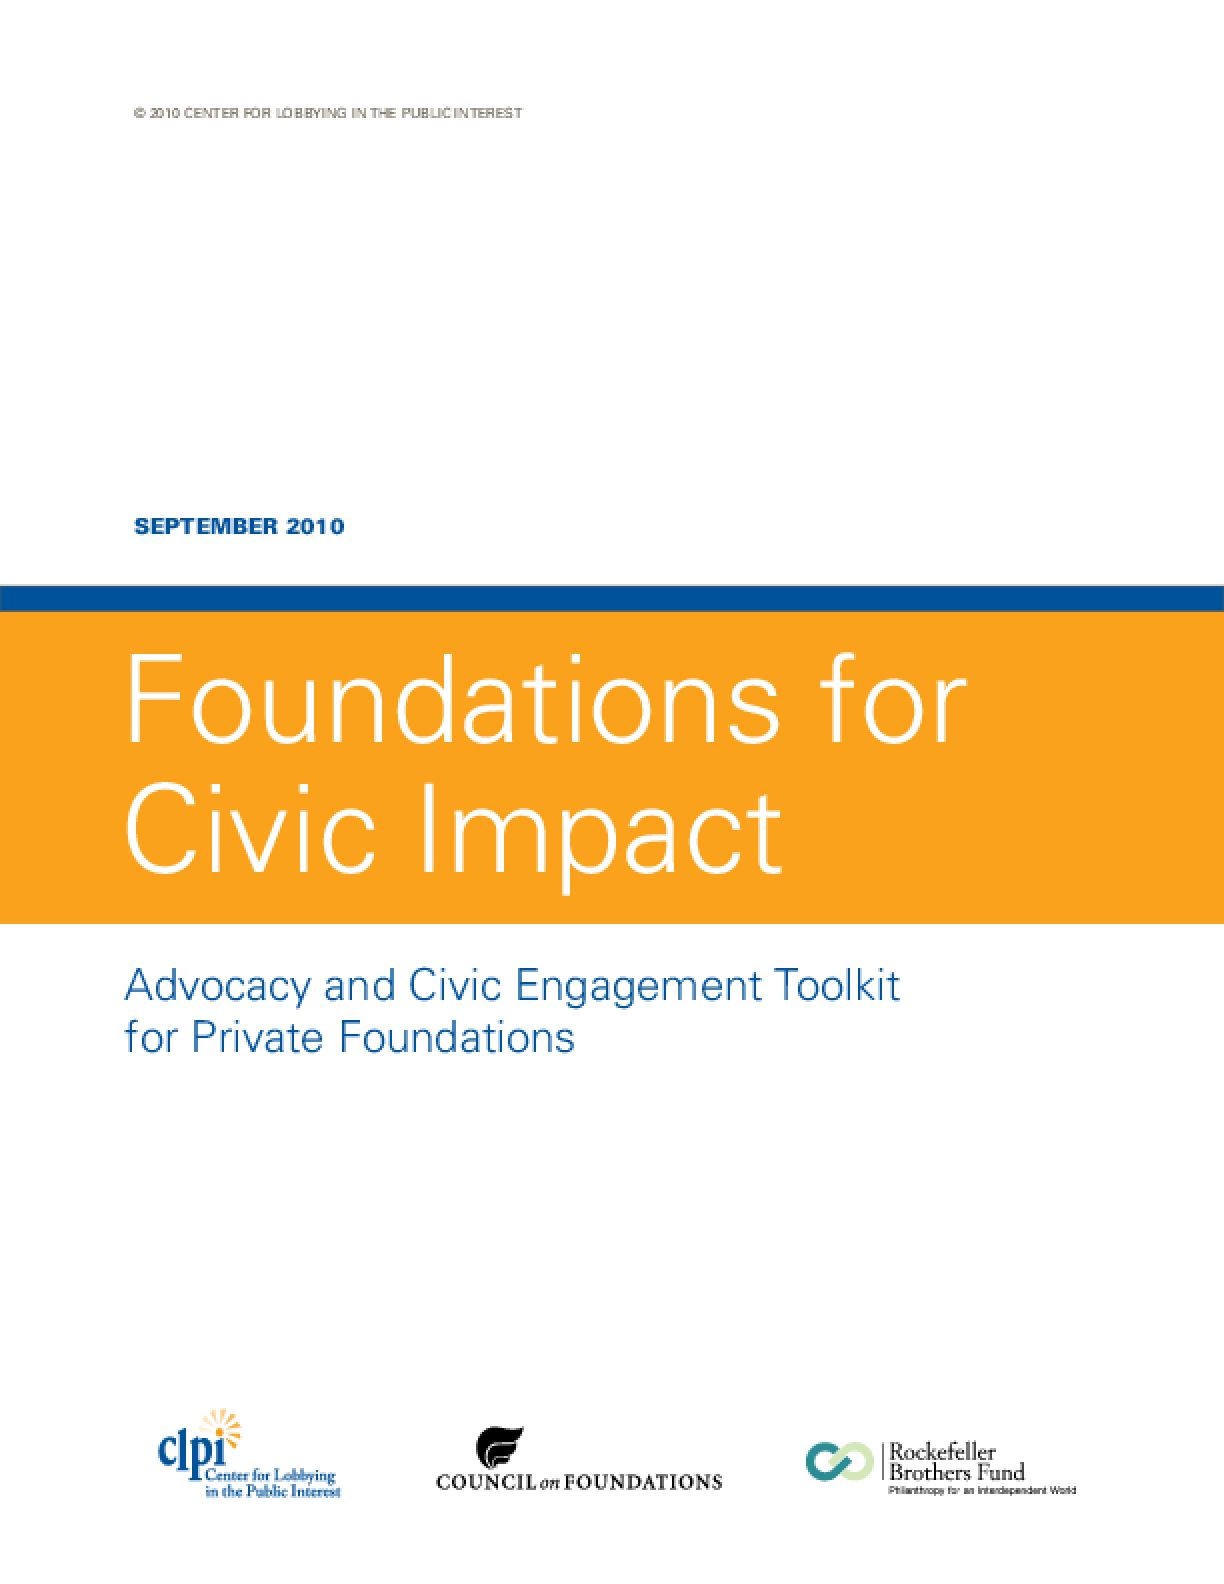 Foundations for Civic Impact: Advocacy and Civic Engagement Toolkit for Private Foundations